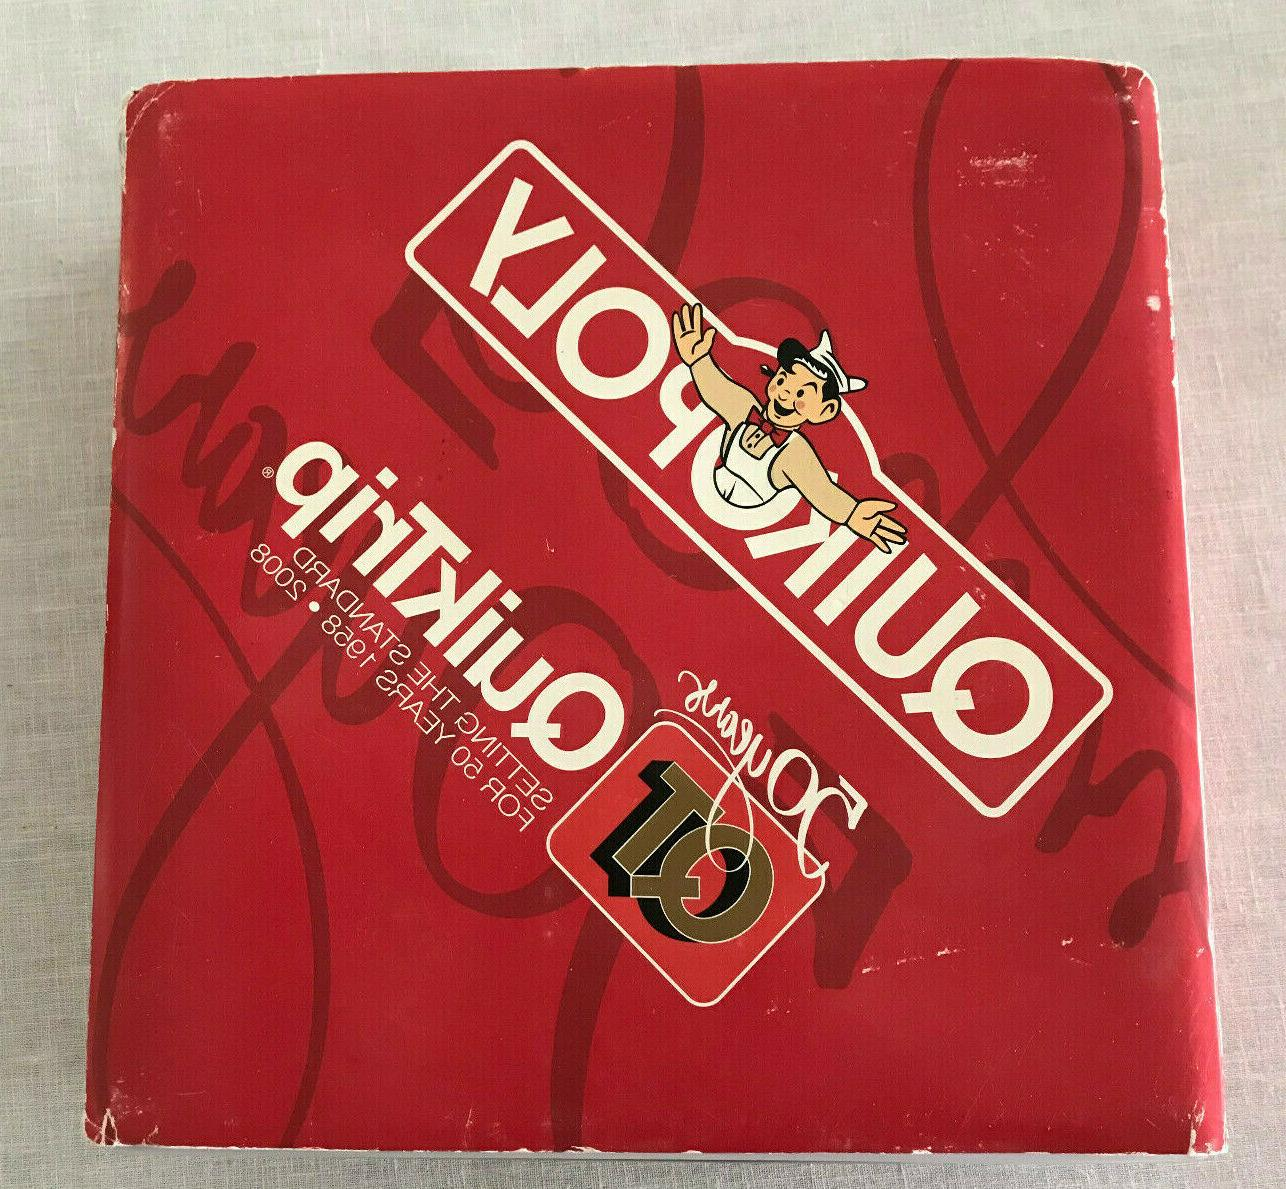 rare 2008 quikopoly 50 years of qt